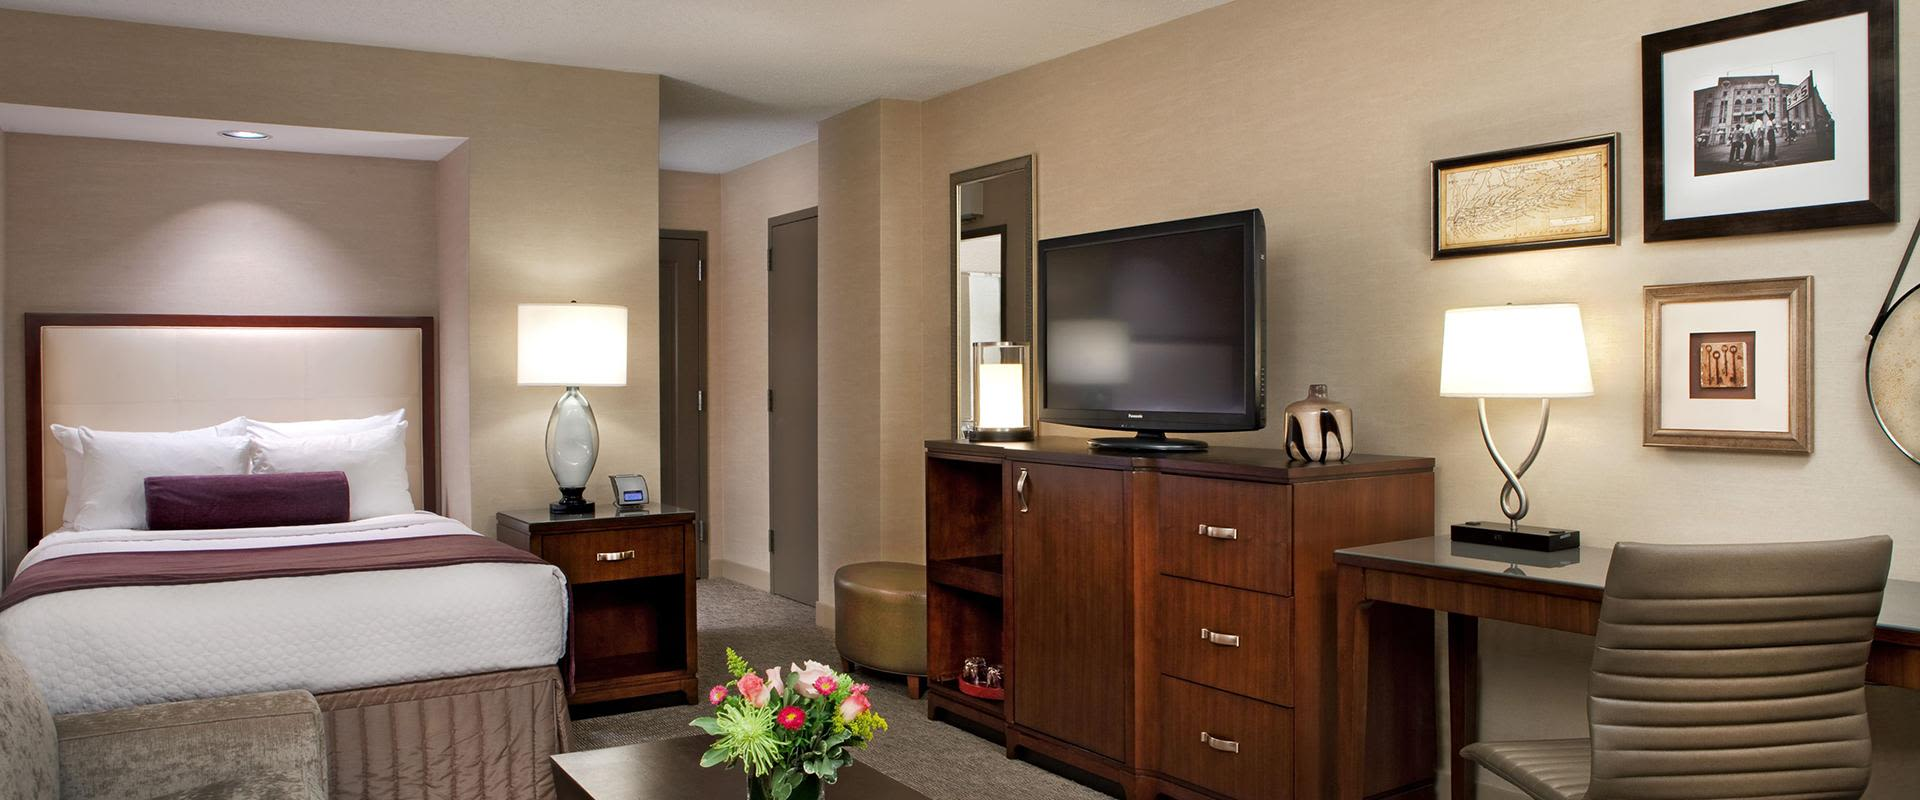 White Plains Hotel Room with TV